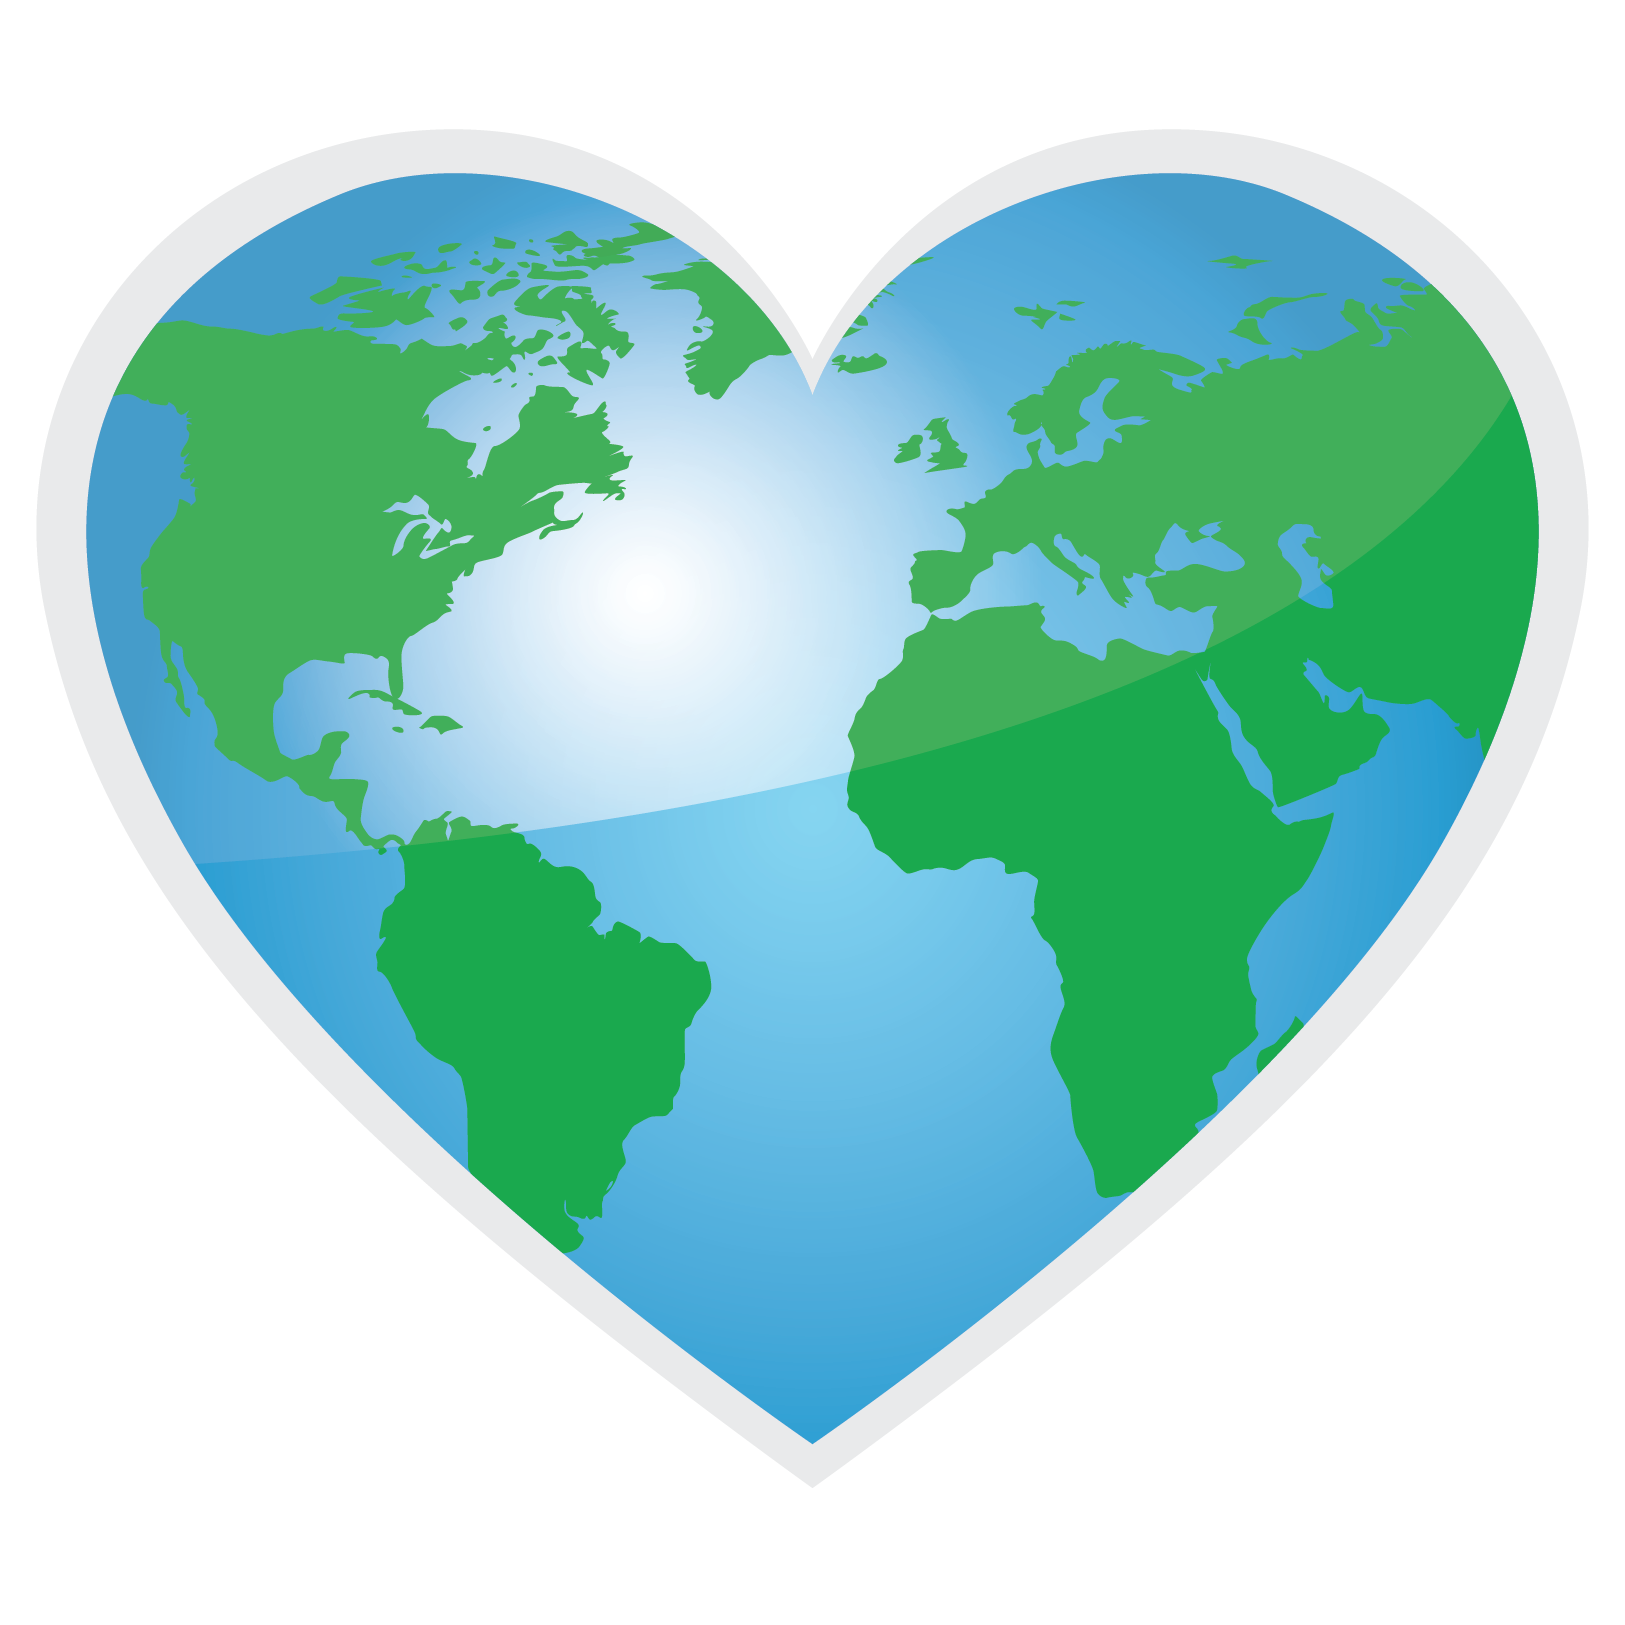 Heart world clipart banner freeuse library Download Logos banner freeuse library